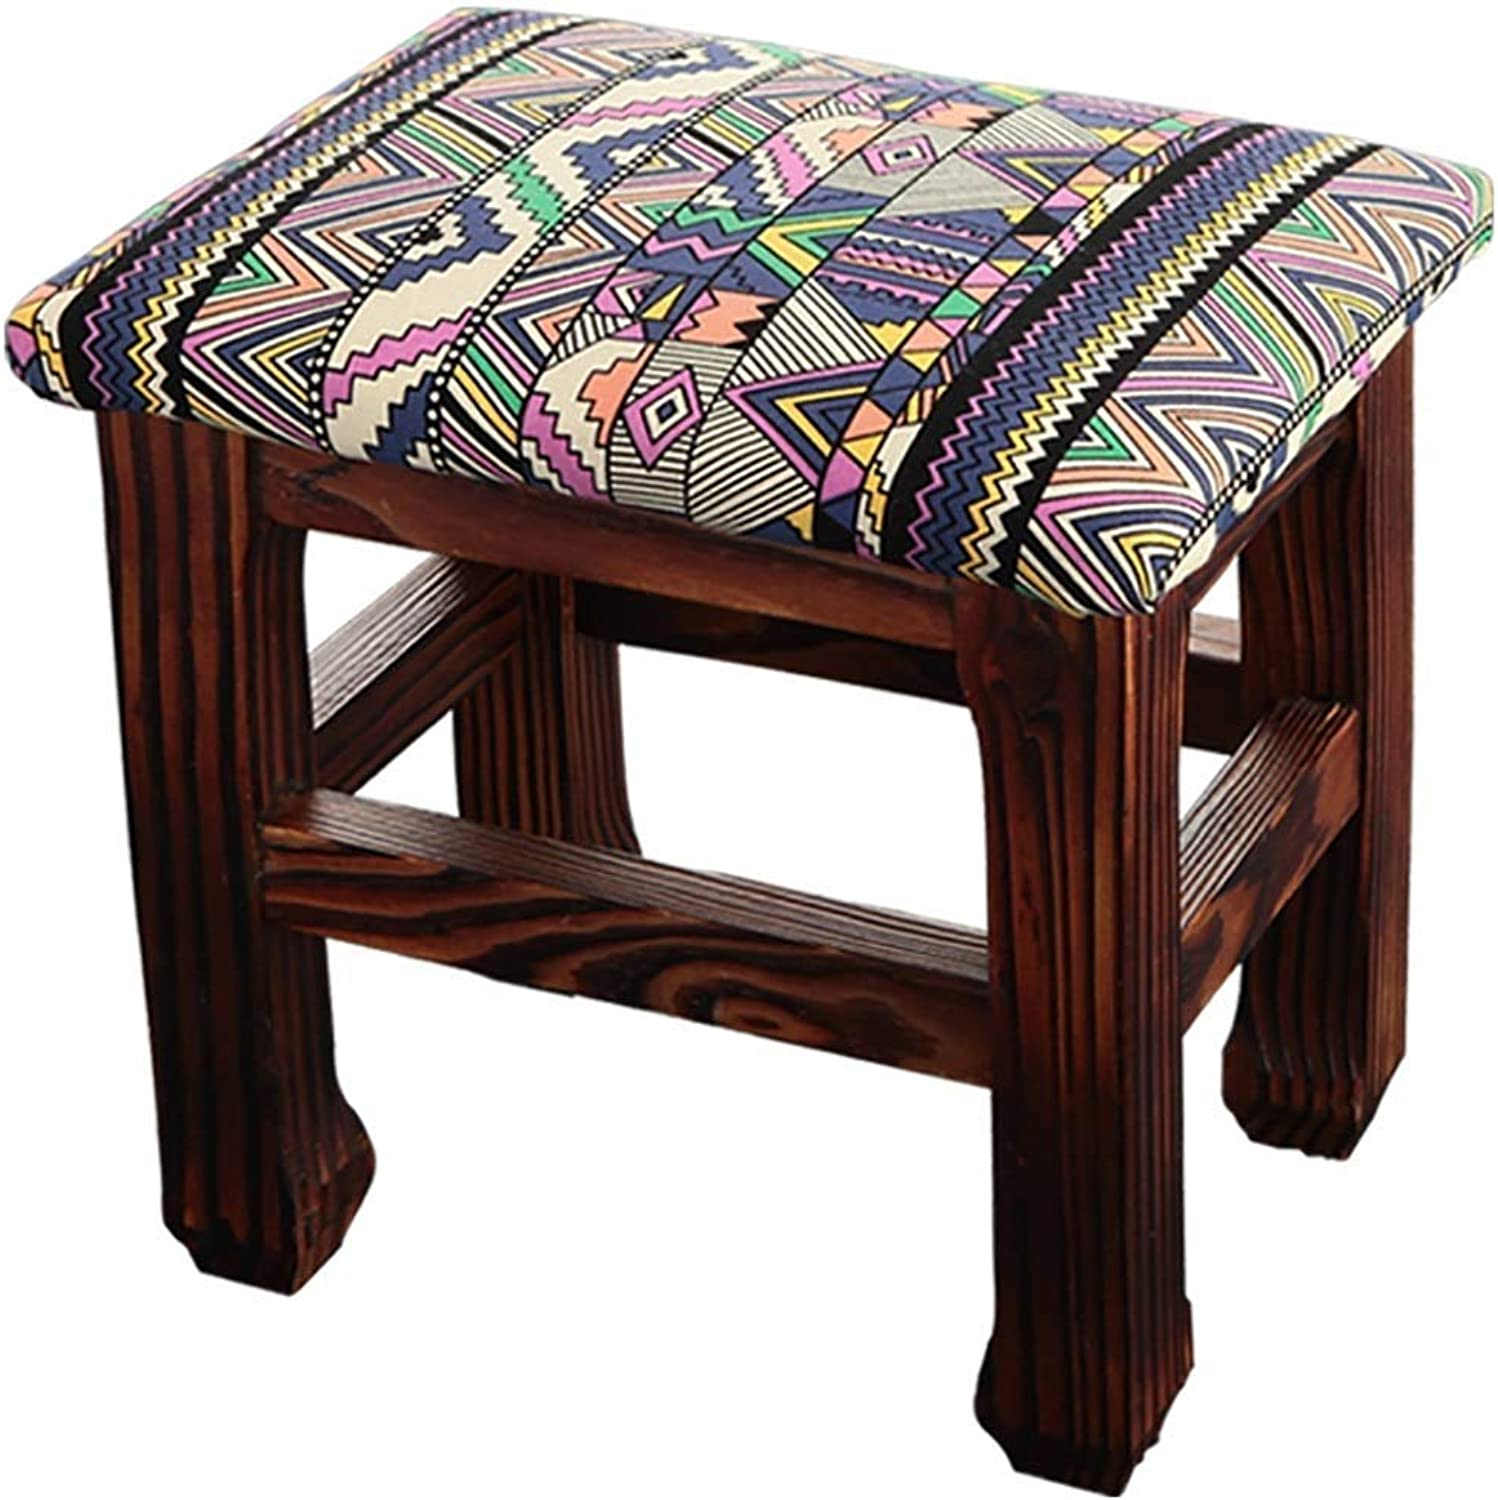 Footstool Convenient Solid Wood Cloth Wearing A shoes Bench Household, 2 Styles 2 Sizes GFMING (color   A, Size   26x20x25cm)